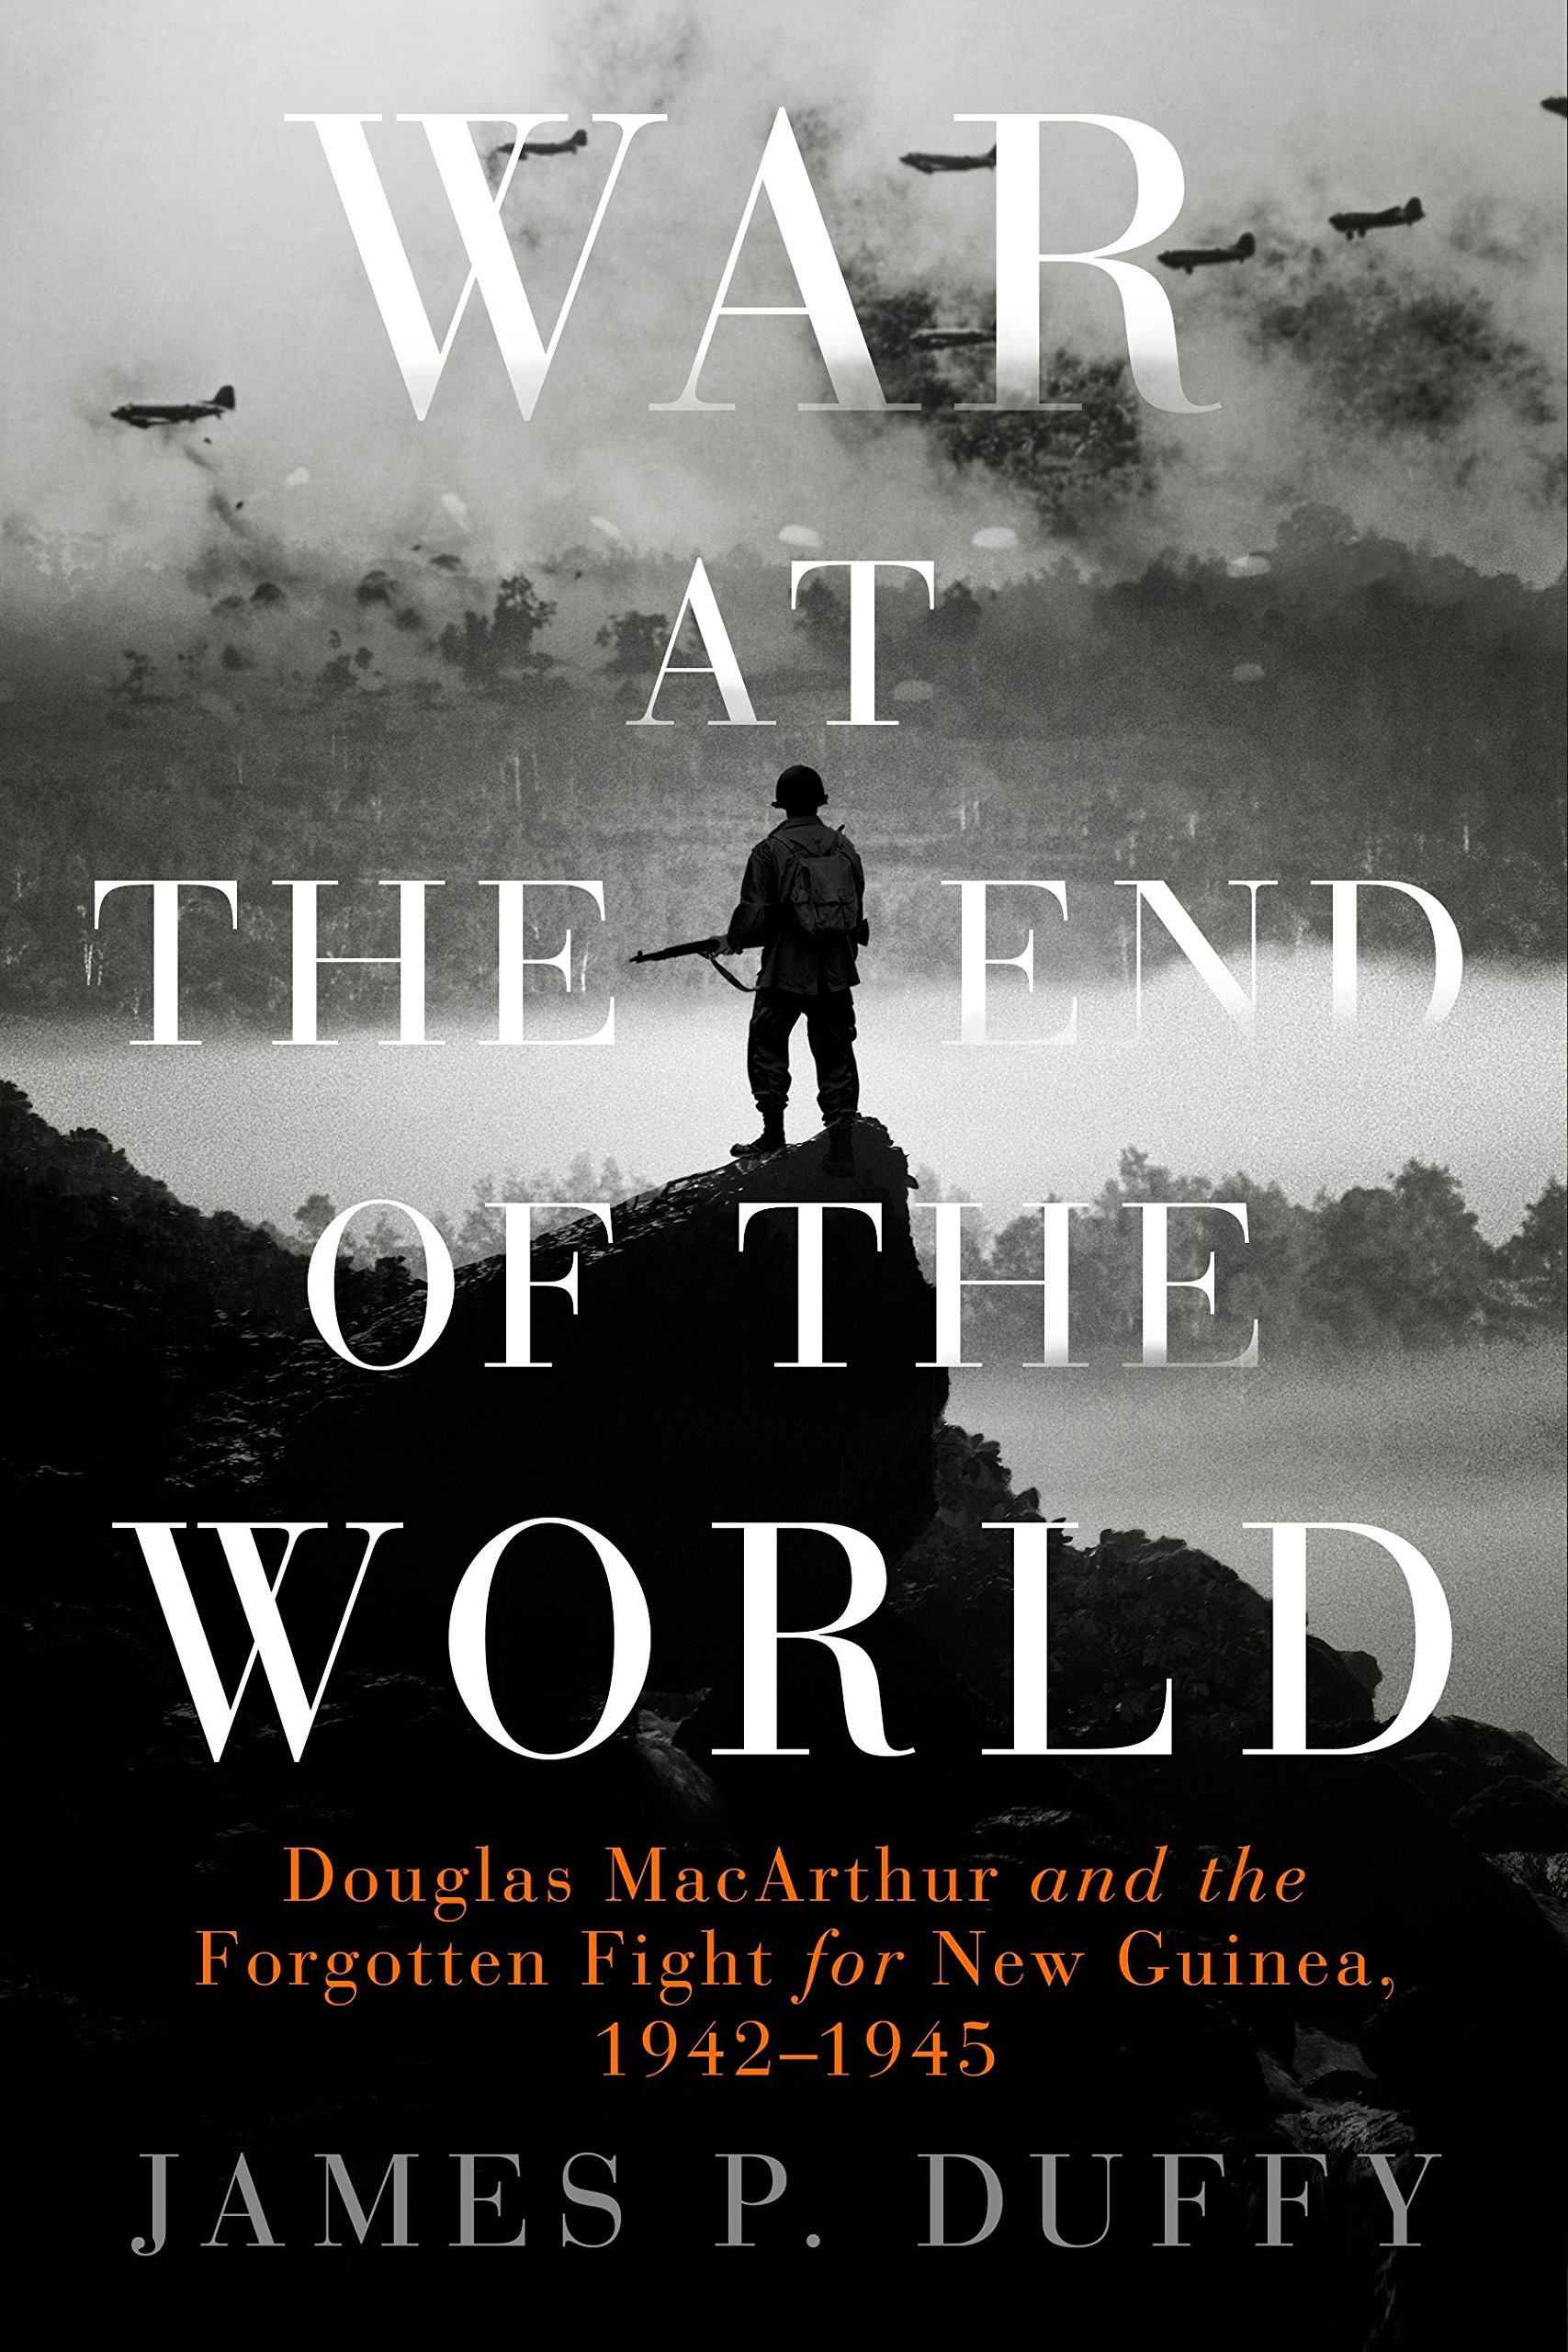 Download War at the End of the World: Douglas MacArthur and the Forgotten Fight For New Guinea, 1942-1945 pdf